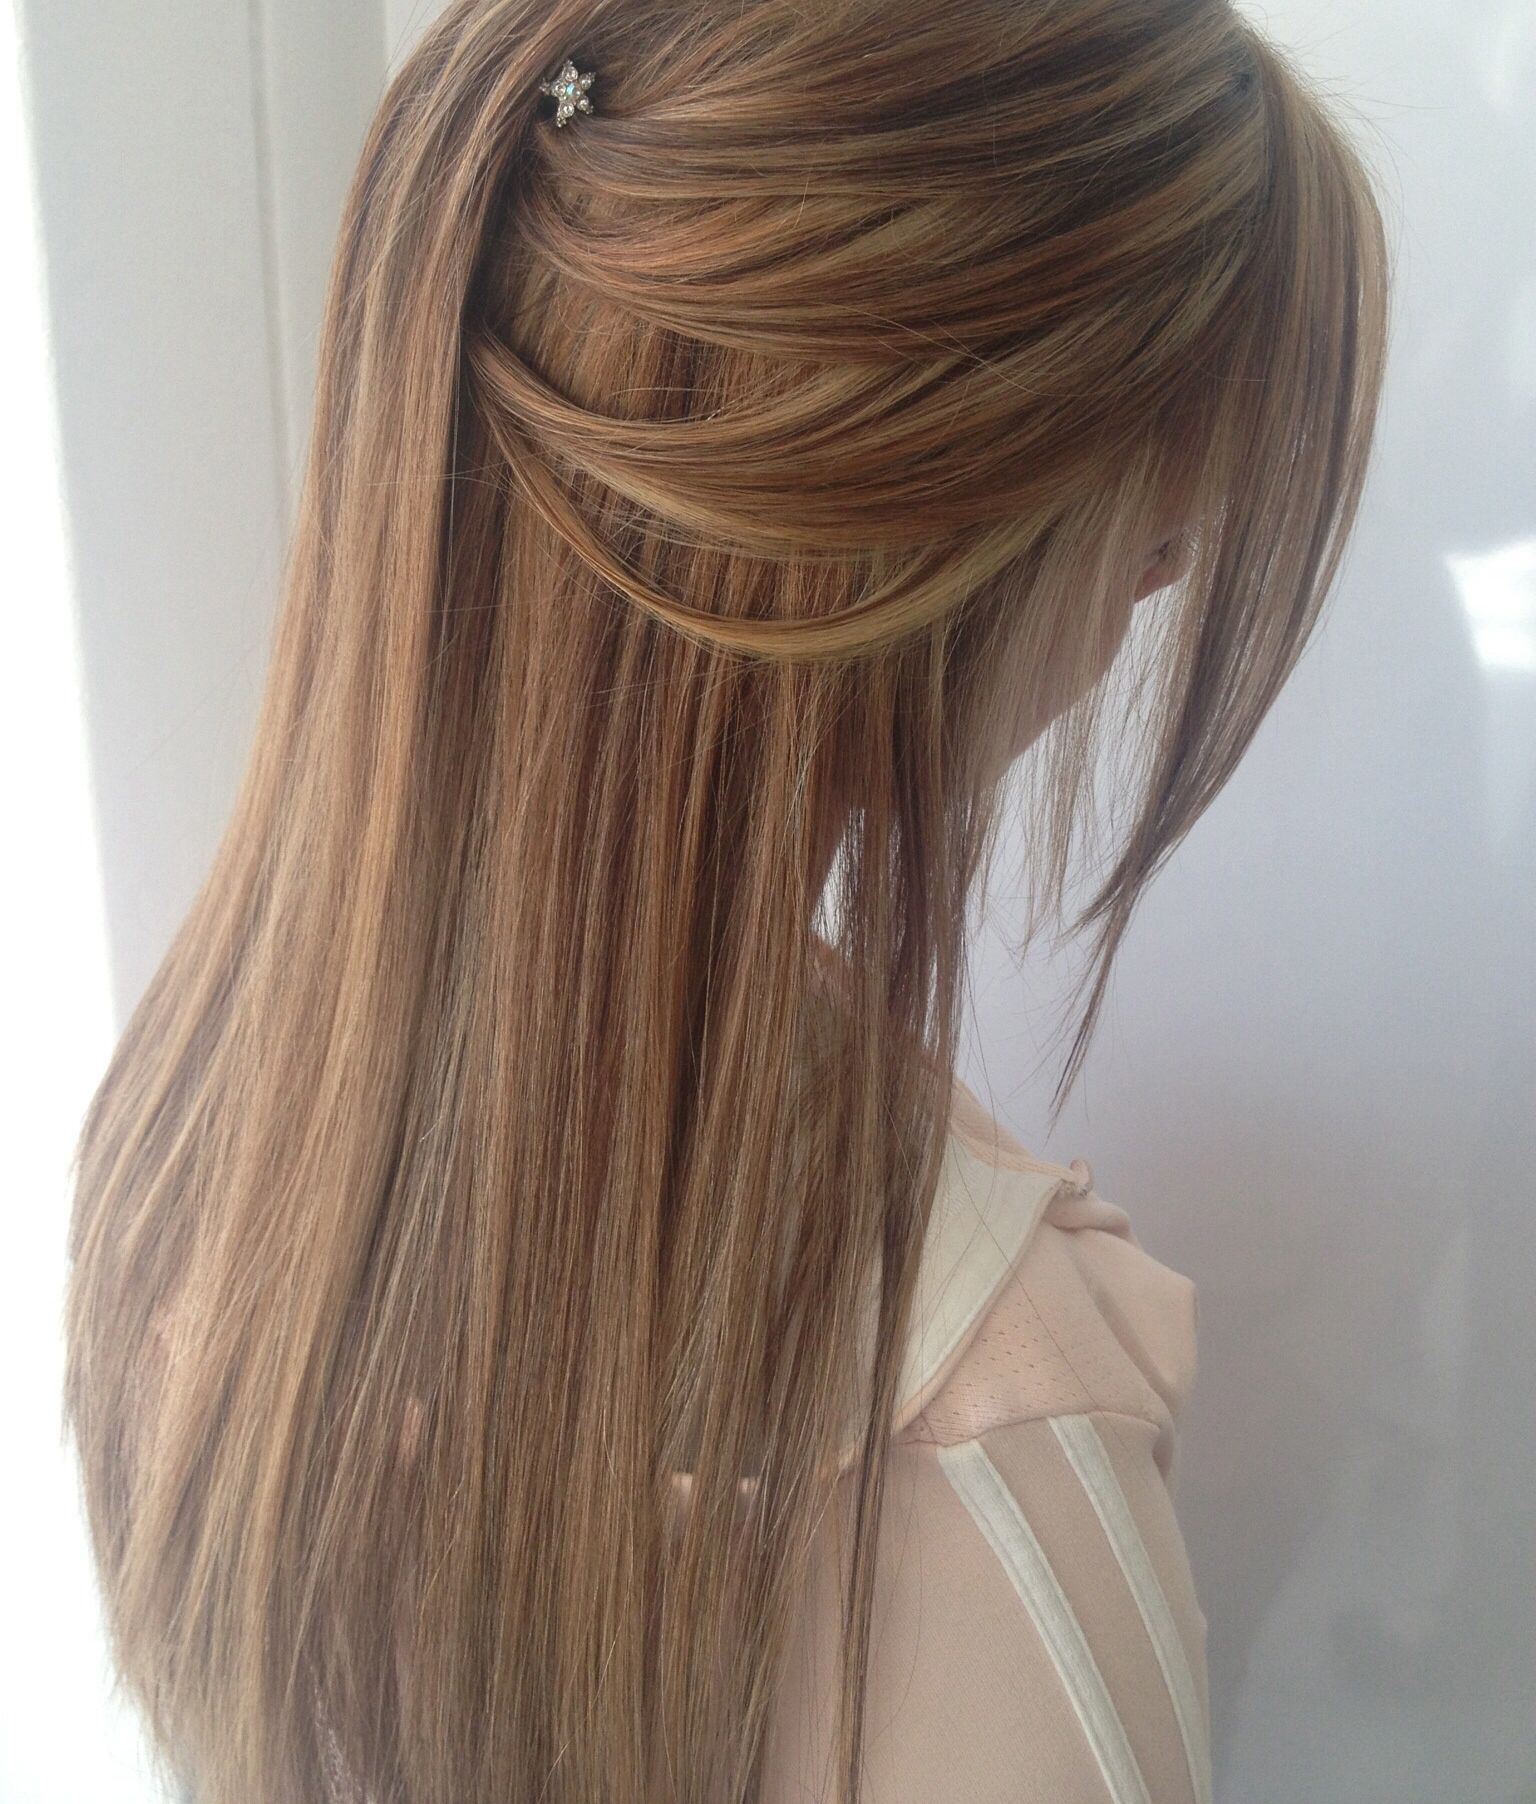 Hair Ideas For The Matric Dance Half Up Half Down Long Hair Upstyle Hair Styles Straight Hairstyles Down Hairstyles